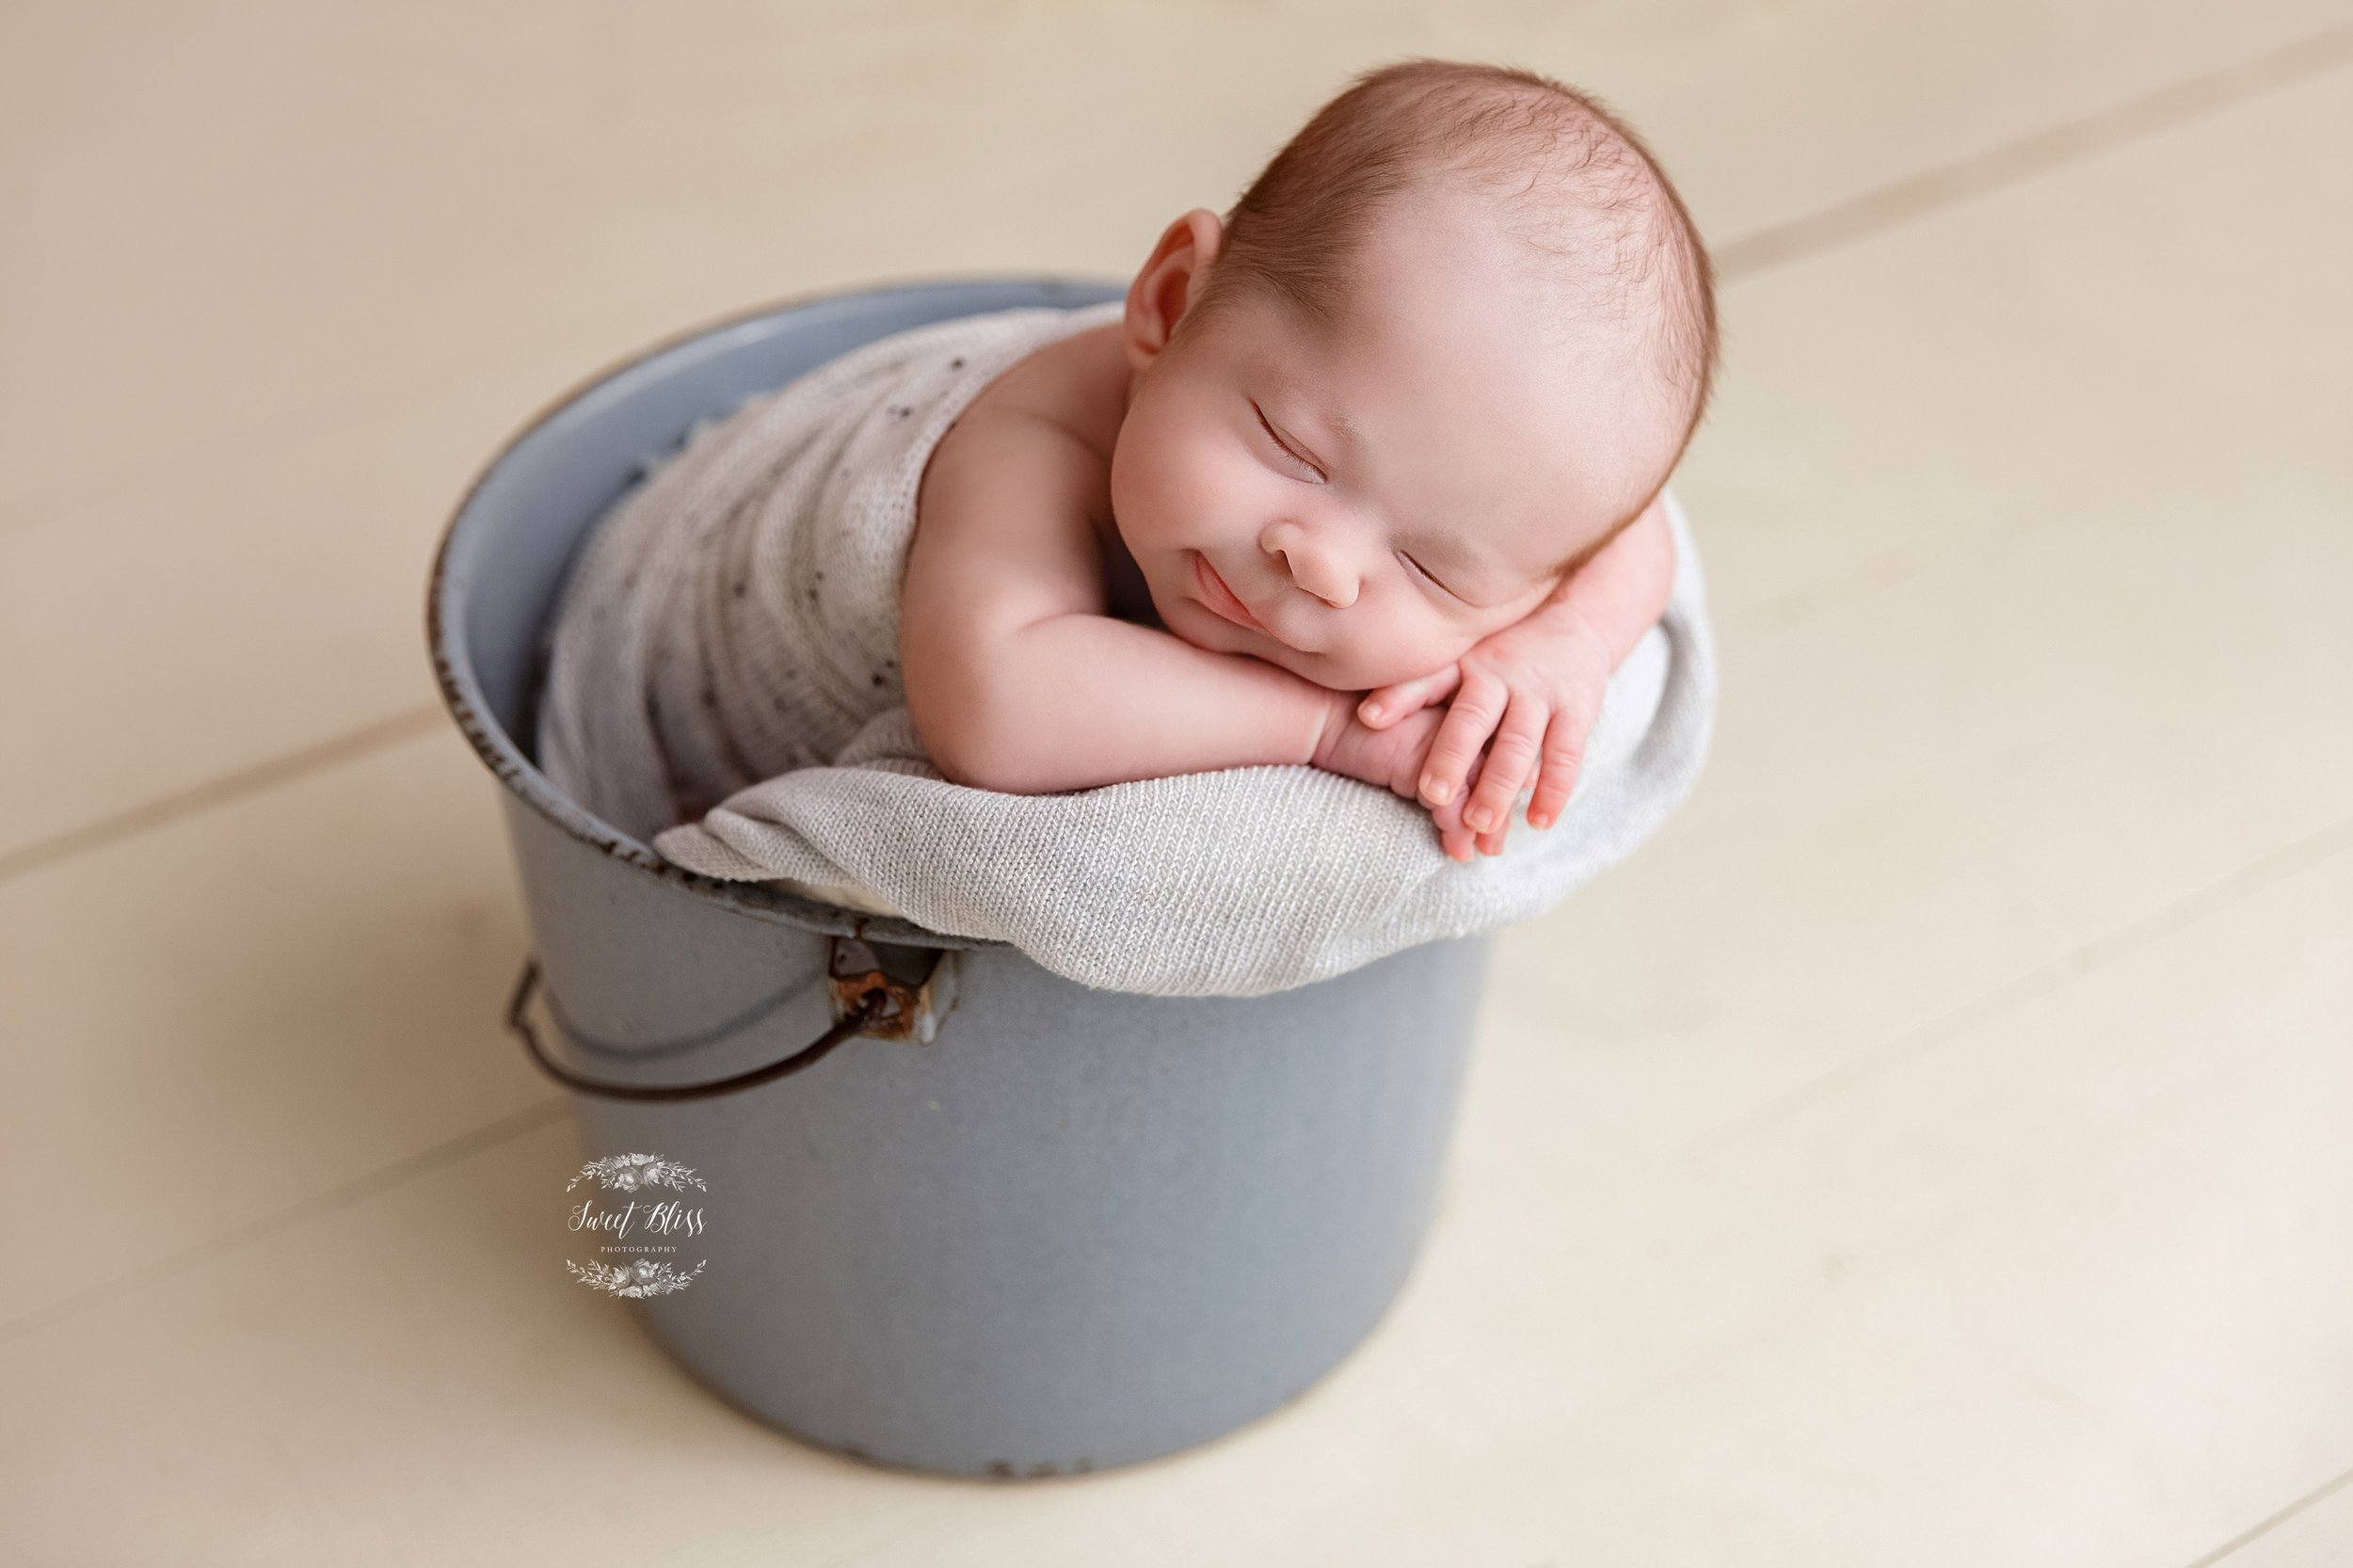 bluebucket_marylandnewborn2.jpg